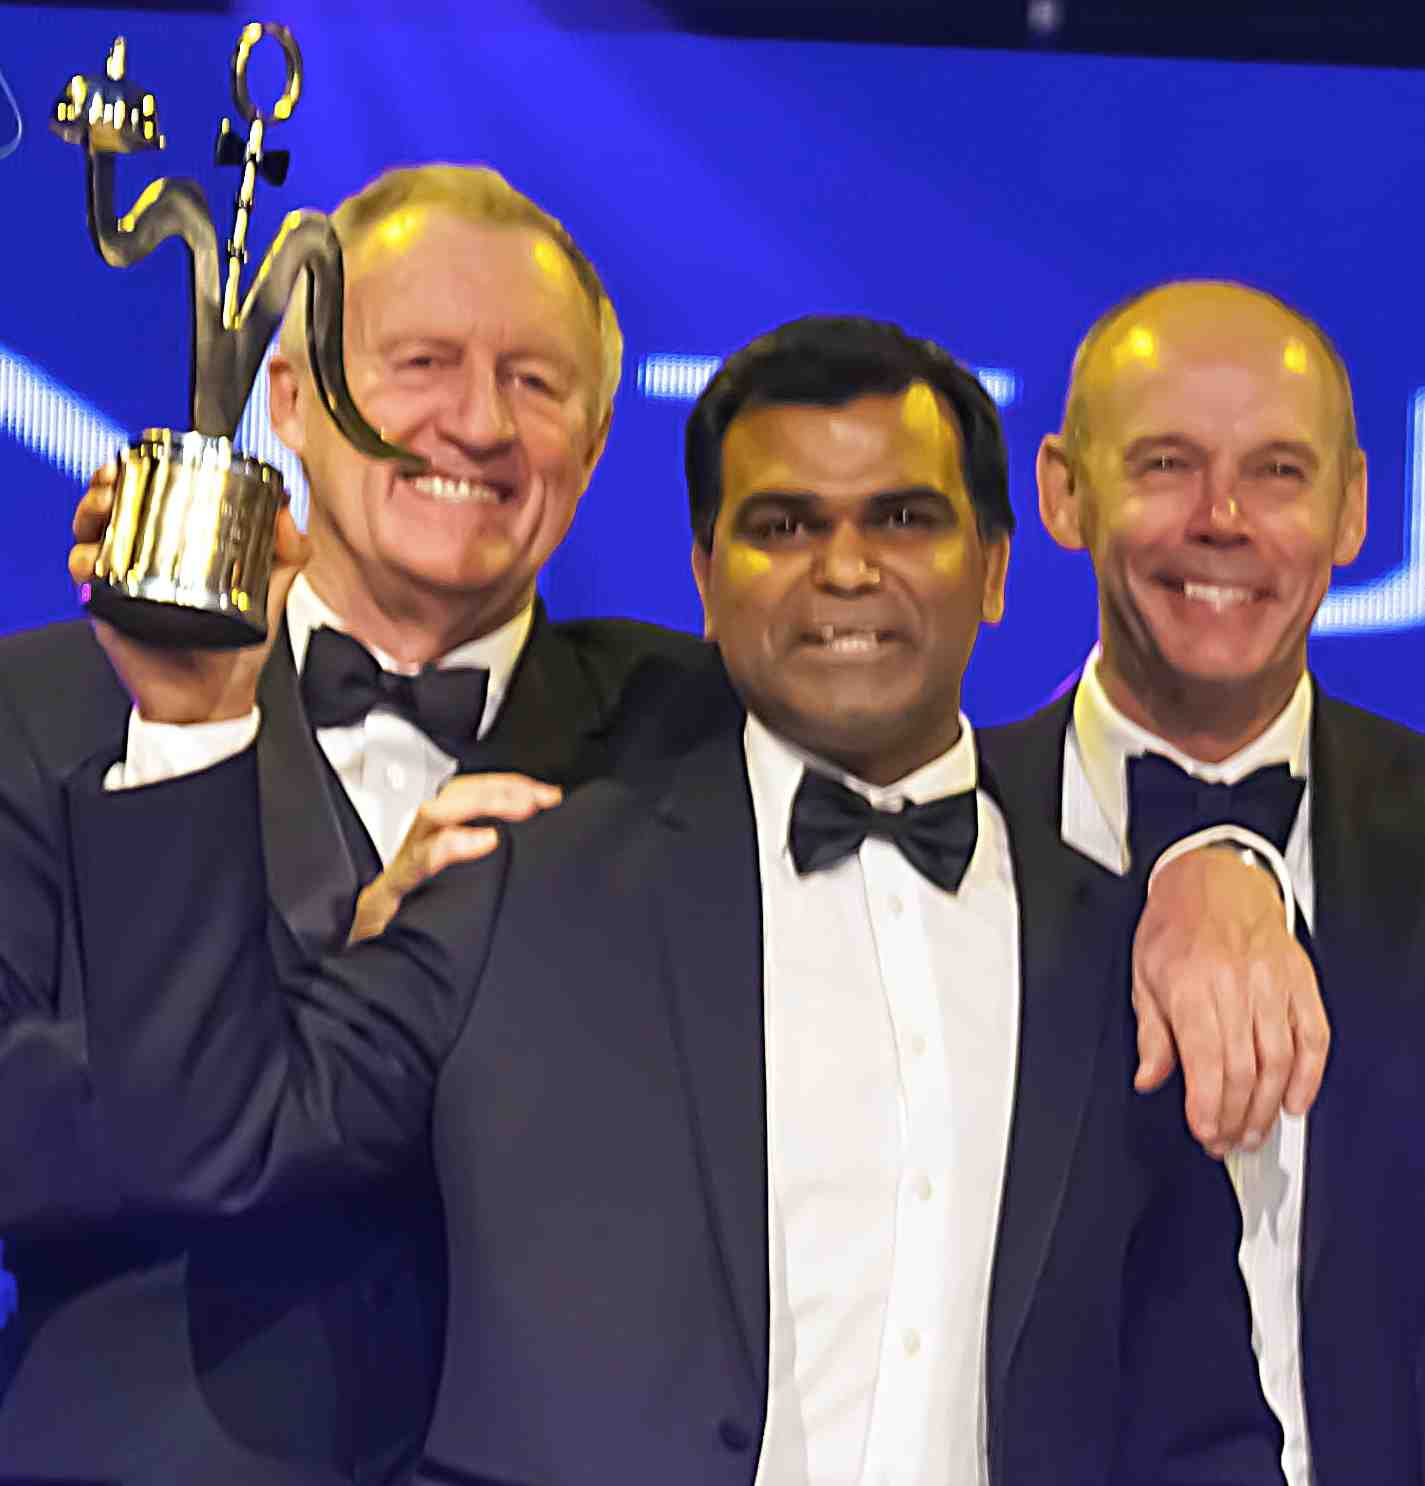 Avi Malik with Chris Tarrant and Sir Clive Woodward at the British Curry Awards